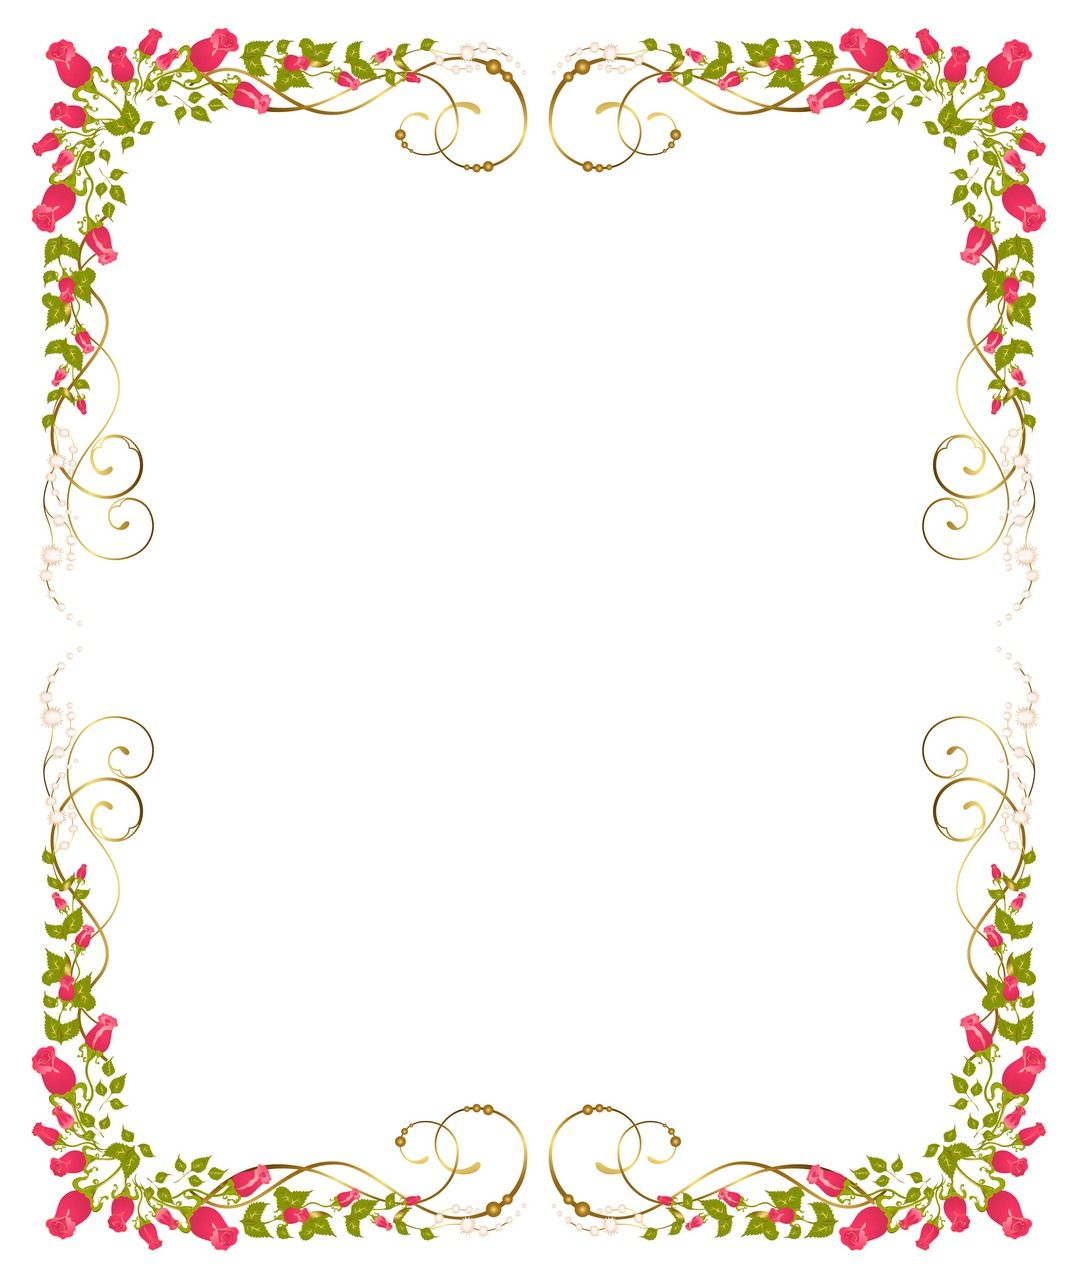 flower background frame 09 vector eps free download logo